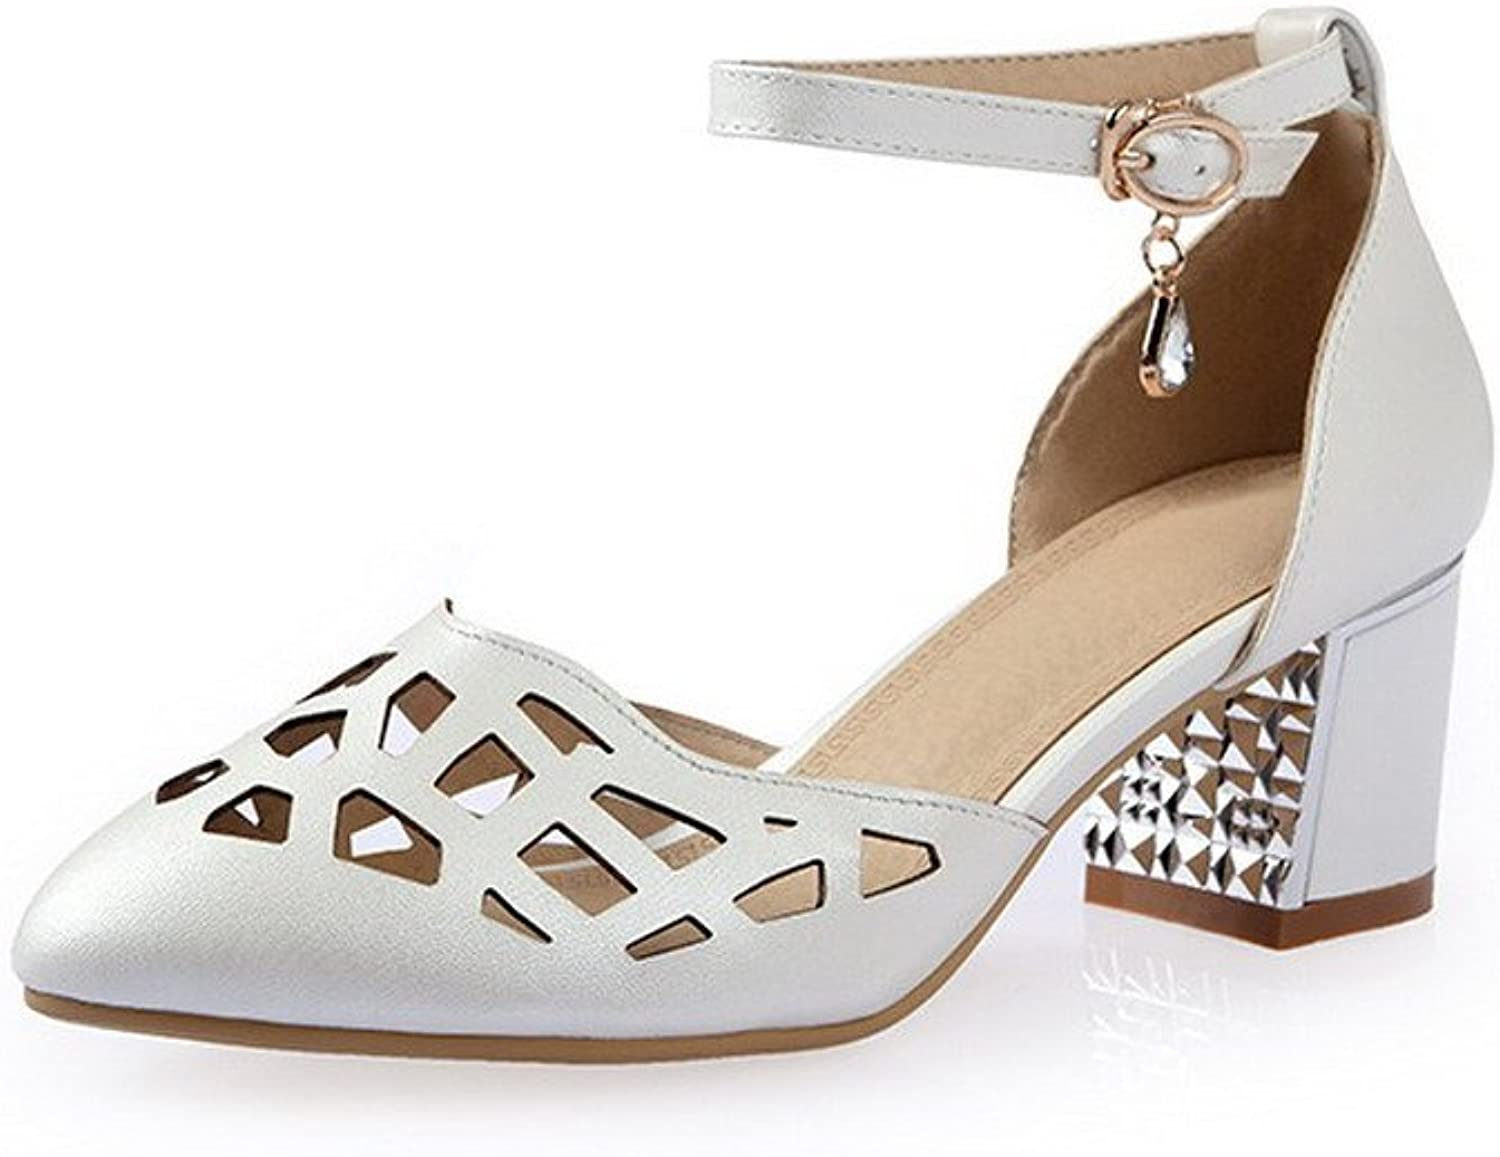 AllhqFashion Women's Soft Material Closed Pointed Toe Kitten-Heels Buckle Solid Sandals